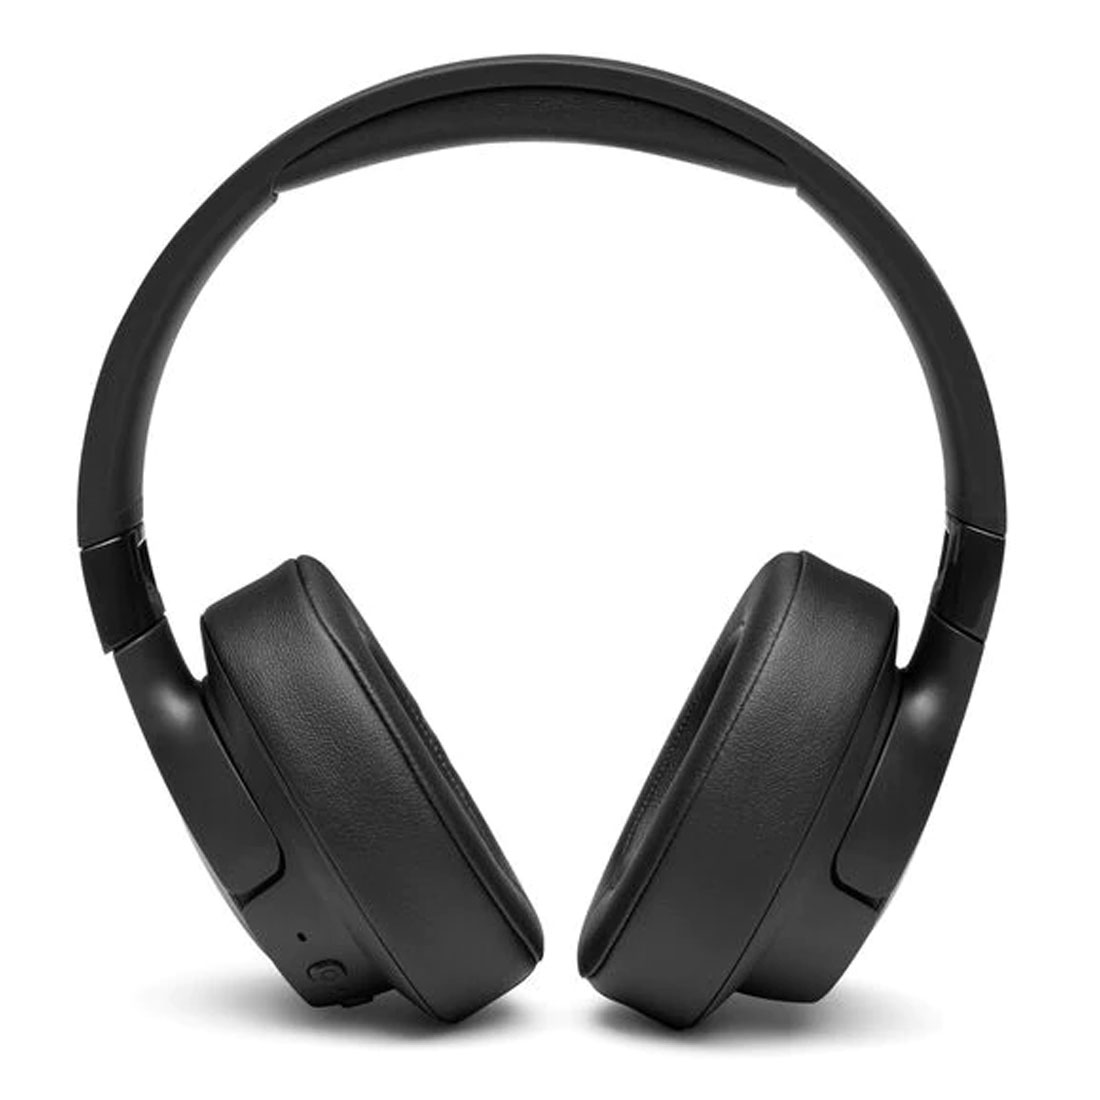 JBL Tune 750BTNC Wireless Over-Ear Active Noise Cancelling Headphones - Black